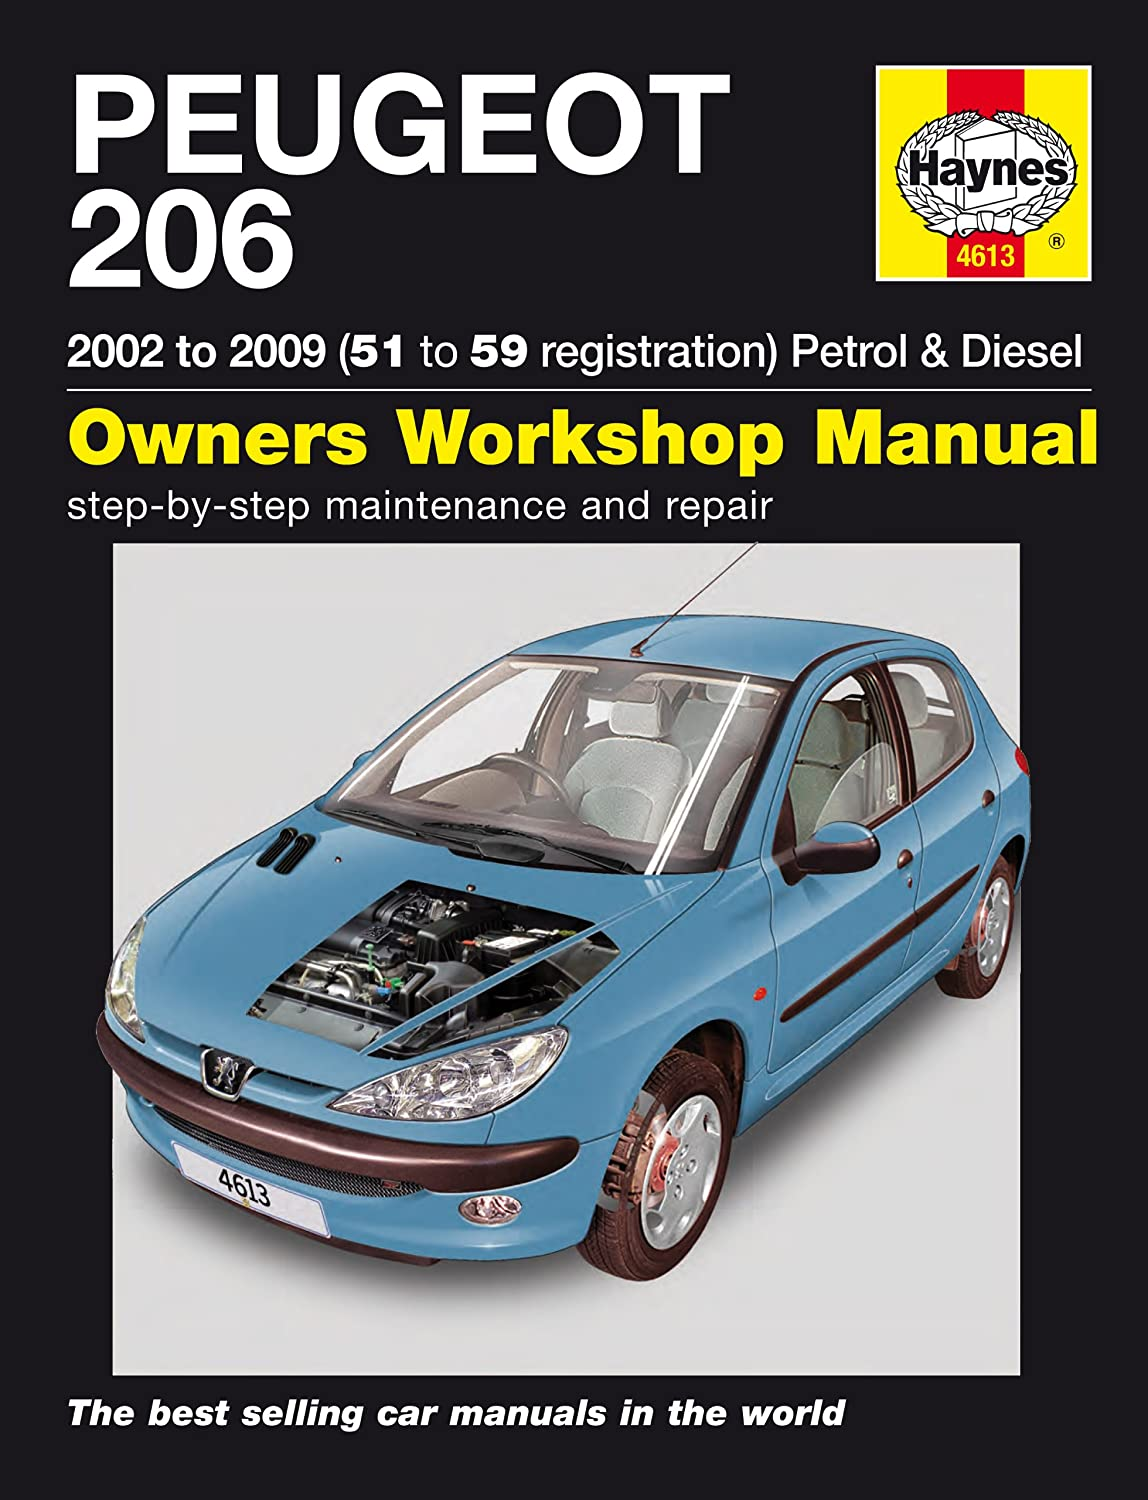 Peugeot 206 Repair Manual Haynes Manual Service Manual Workshop Manual  2002-2006: Amazon.co.uk: Car & Motorbike